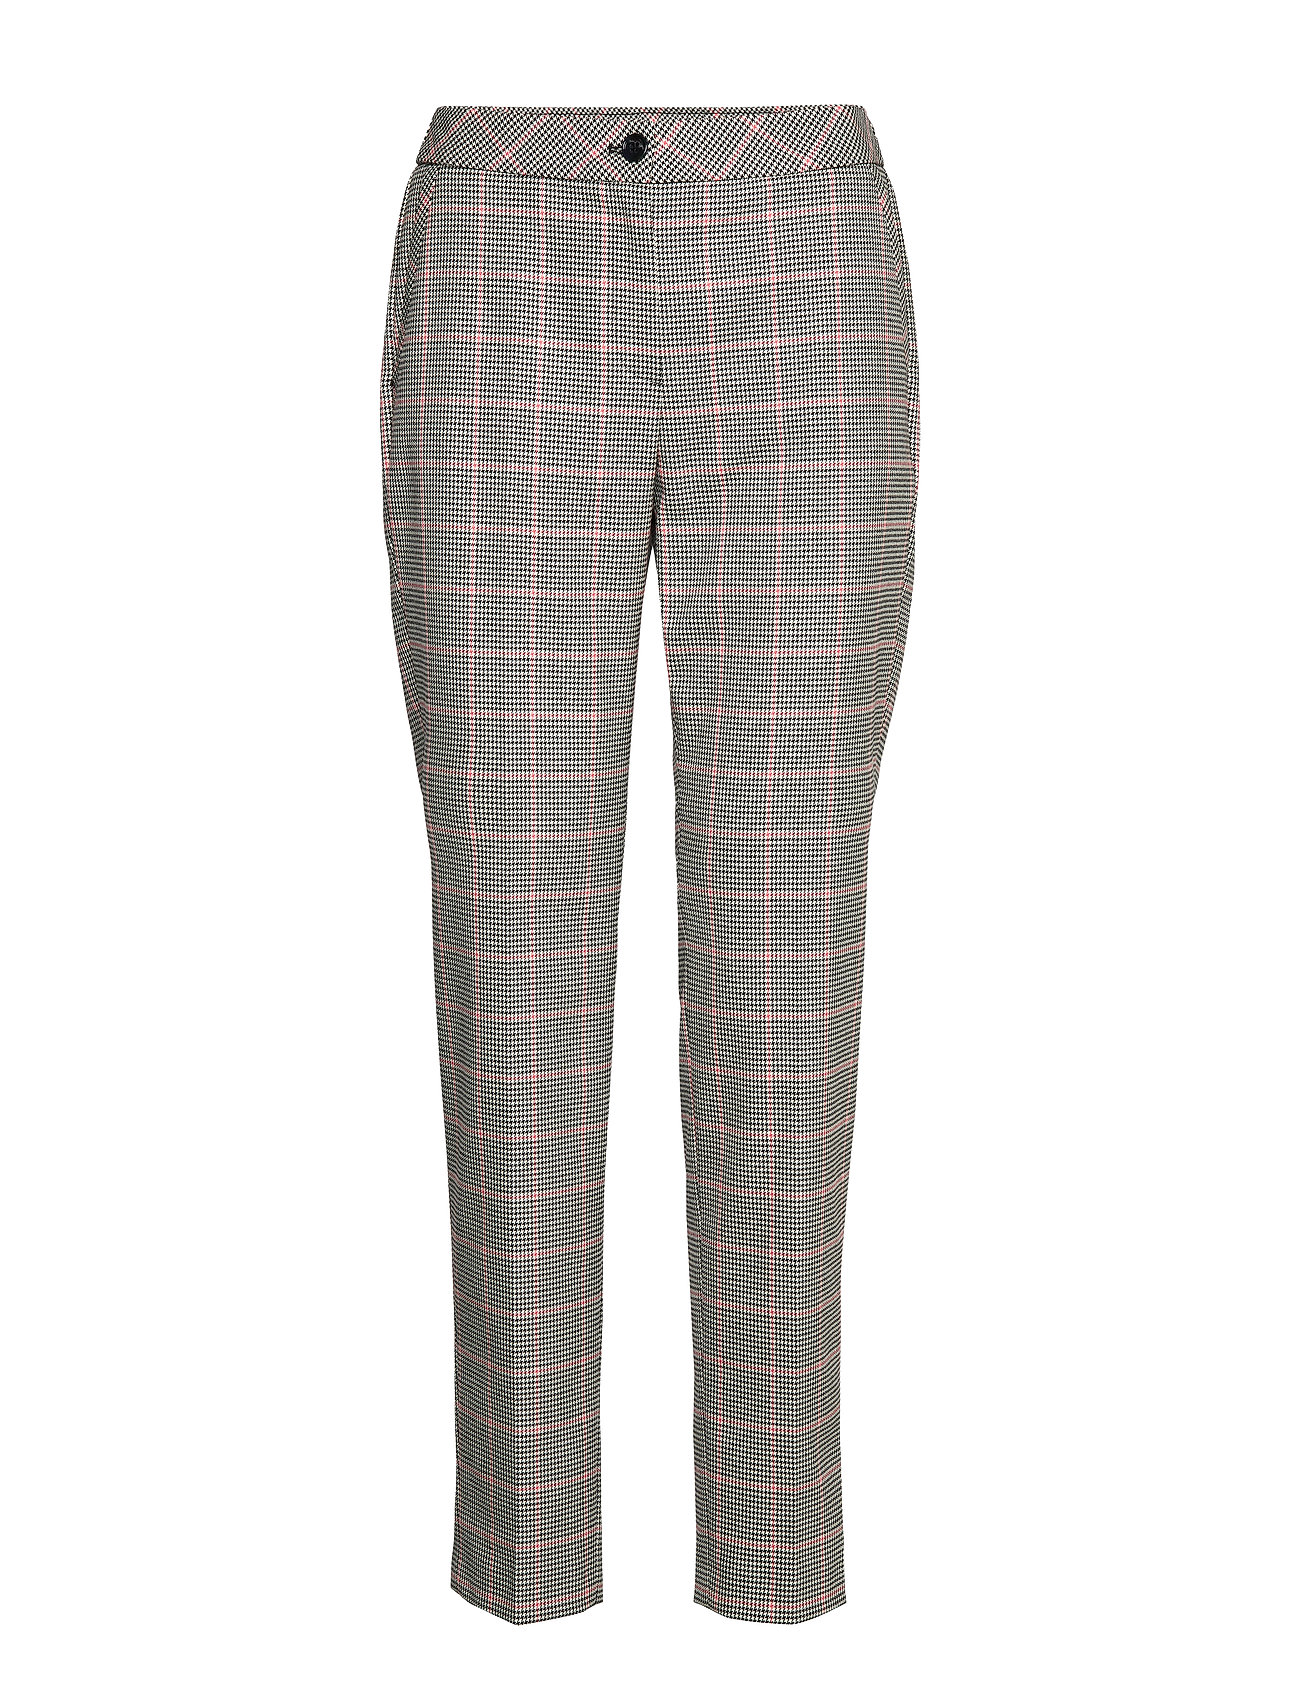 Gerry Weber LEISURE TROUSERS LON - BLACKOFFWHITESPICEDCORAL CHECK